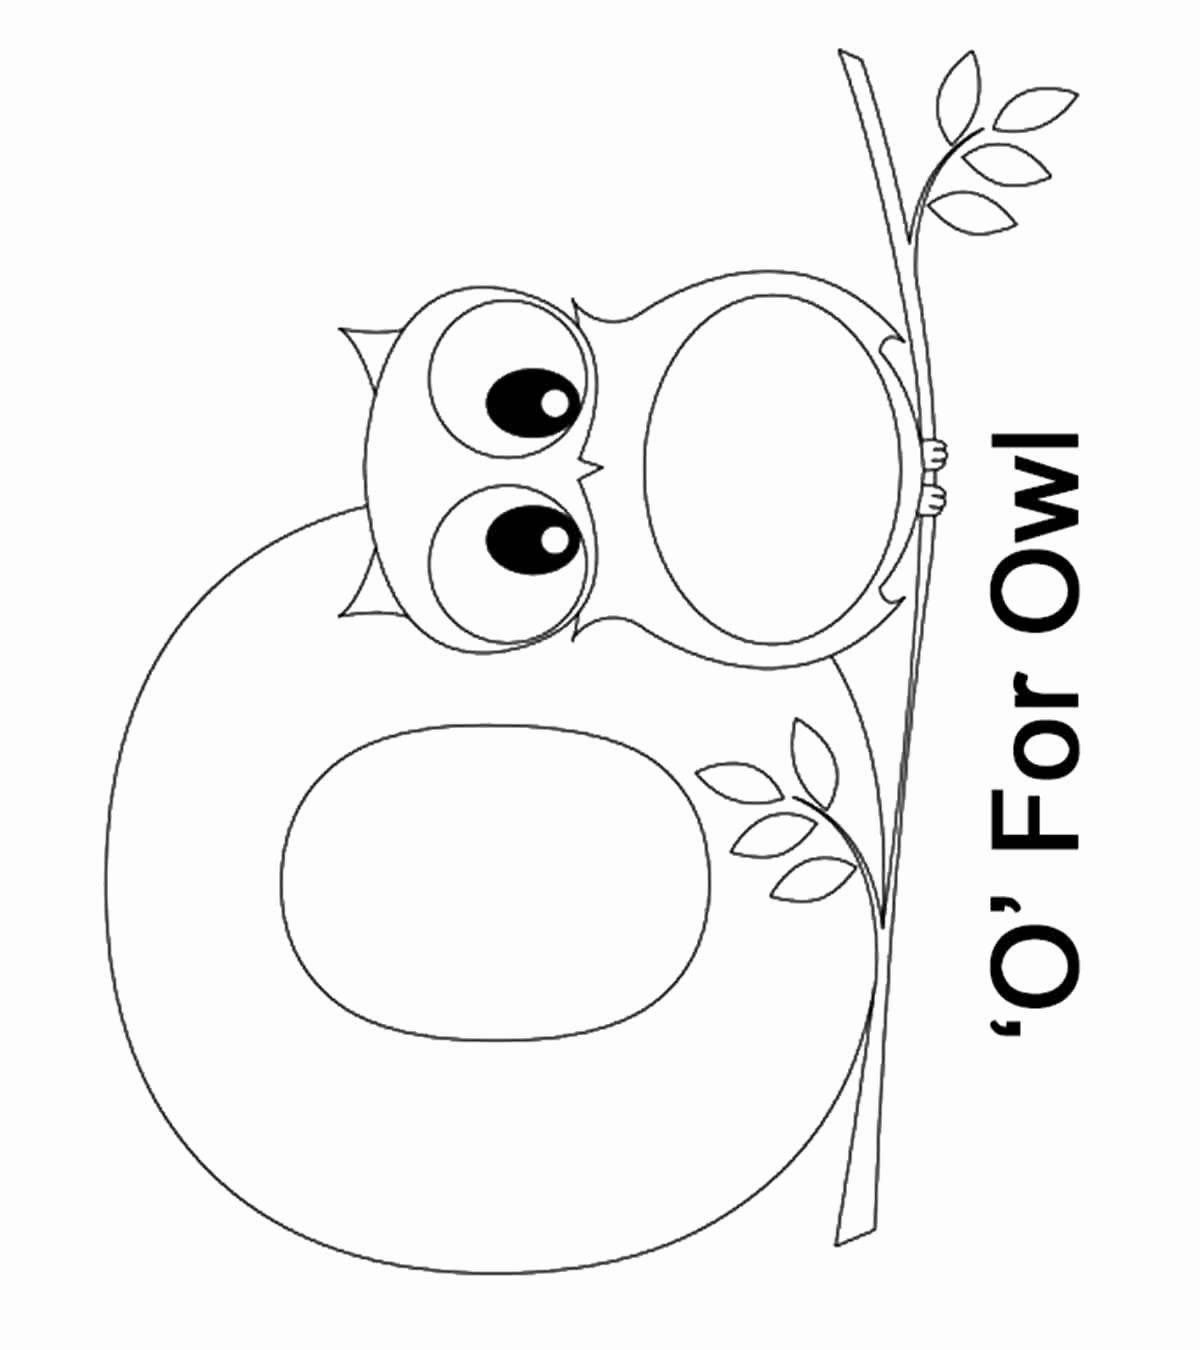 Letter O Coloring Sheets Elegant Eductional Coloring Pages